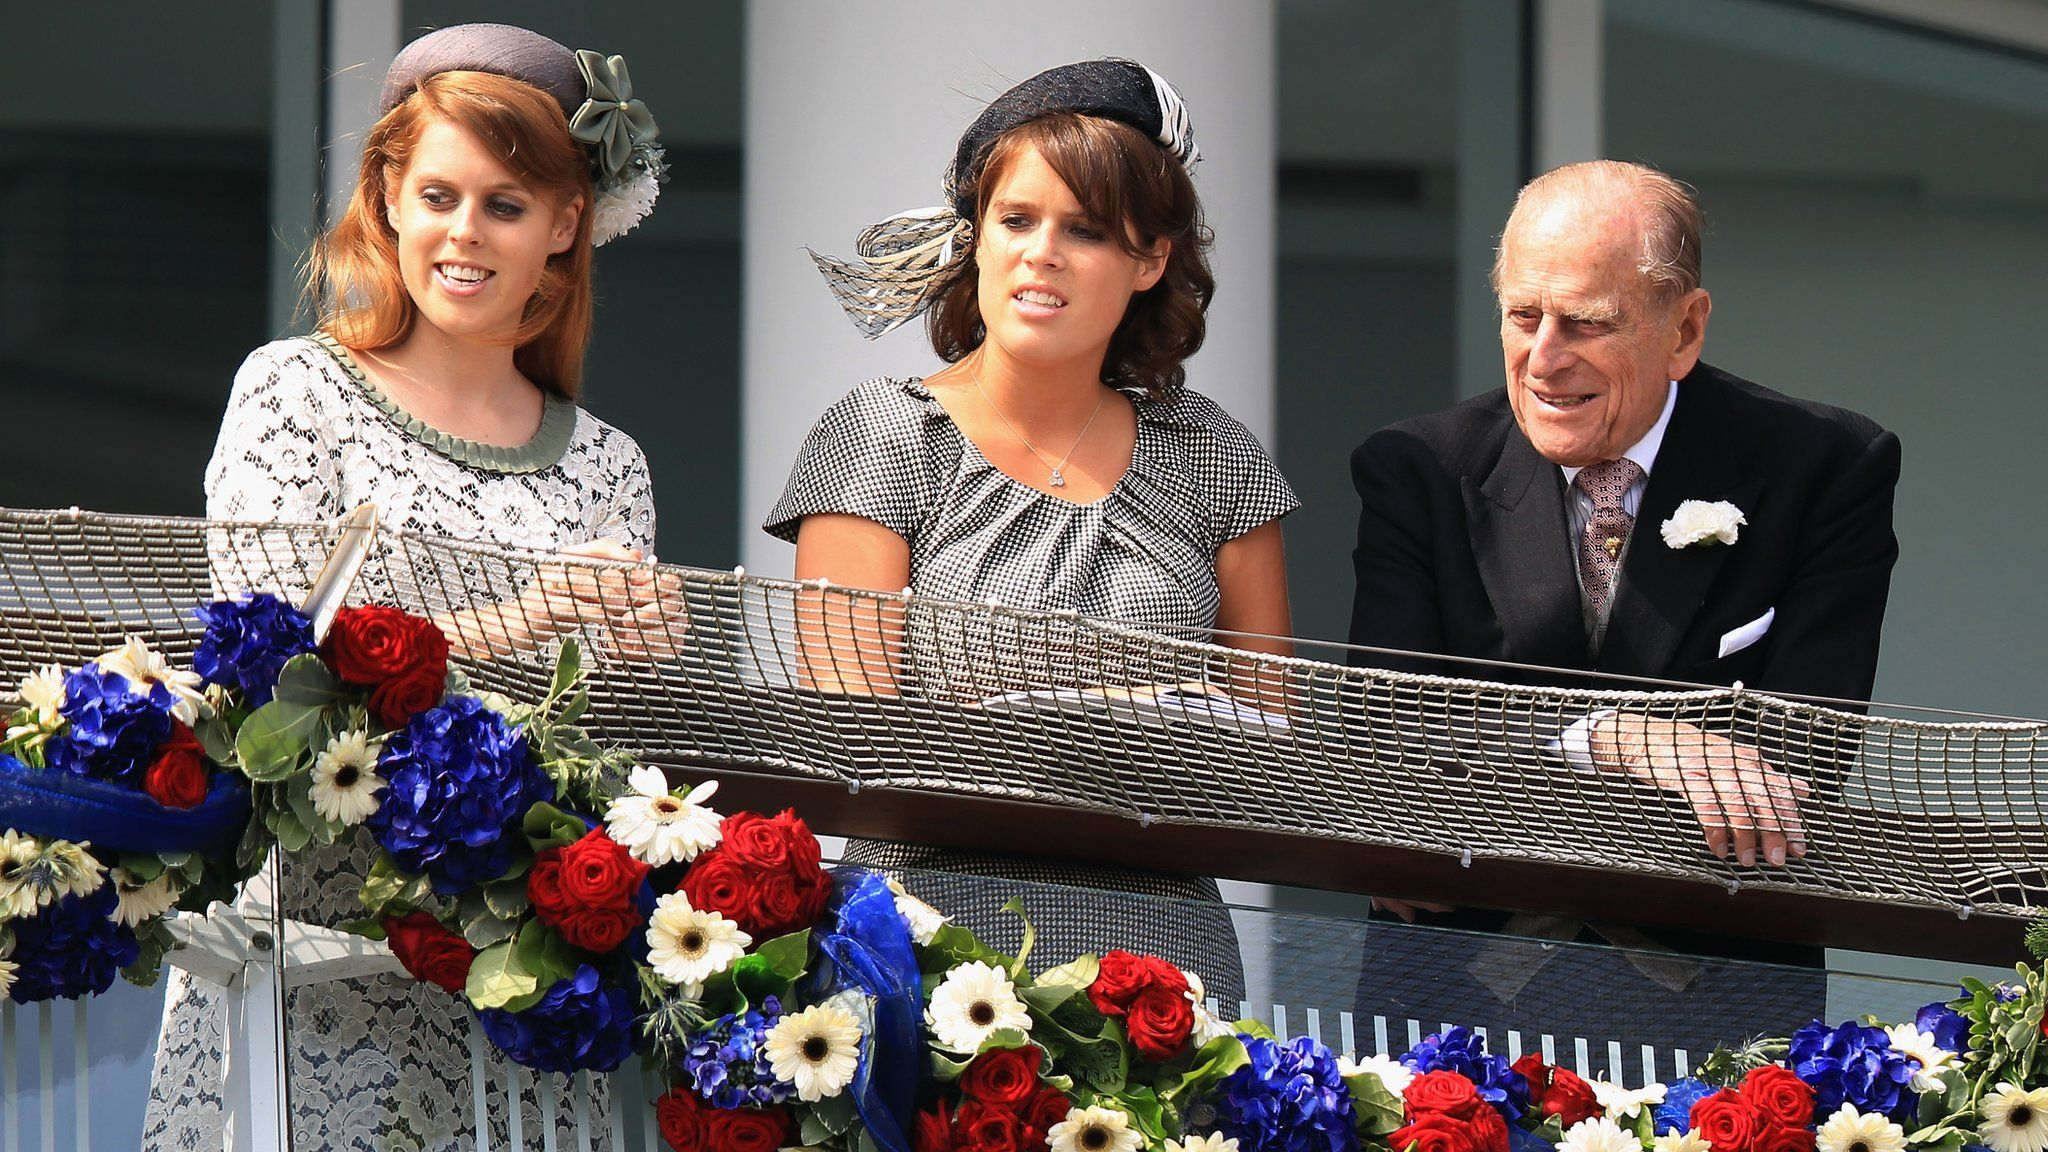 Princess Beatrice, Princess Eugenie and Prince Philip, Duke of Edinburgh at the Derby Festival in 2012